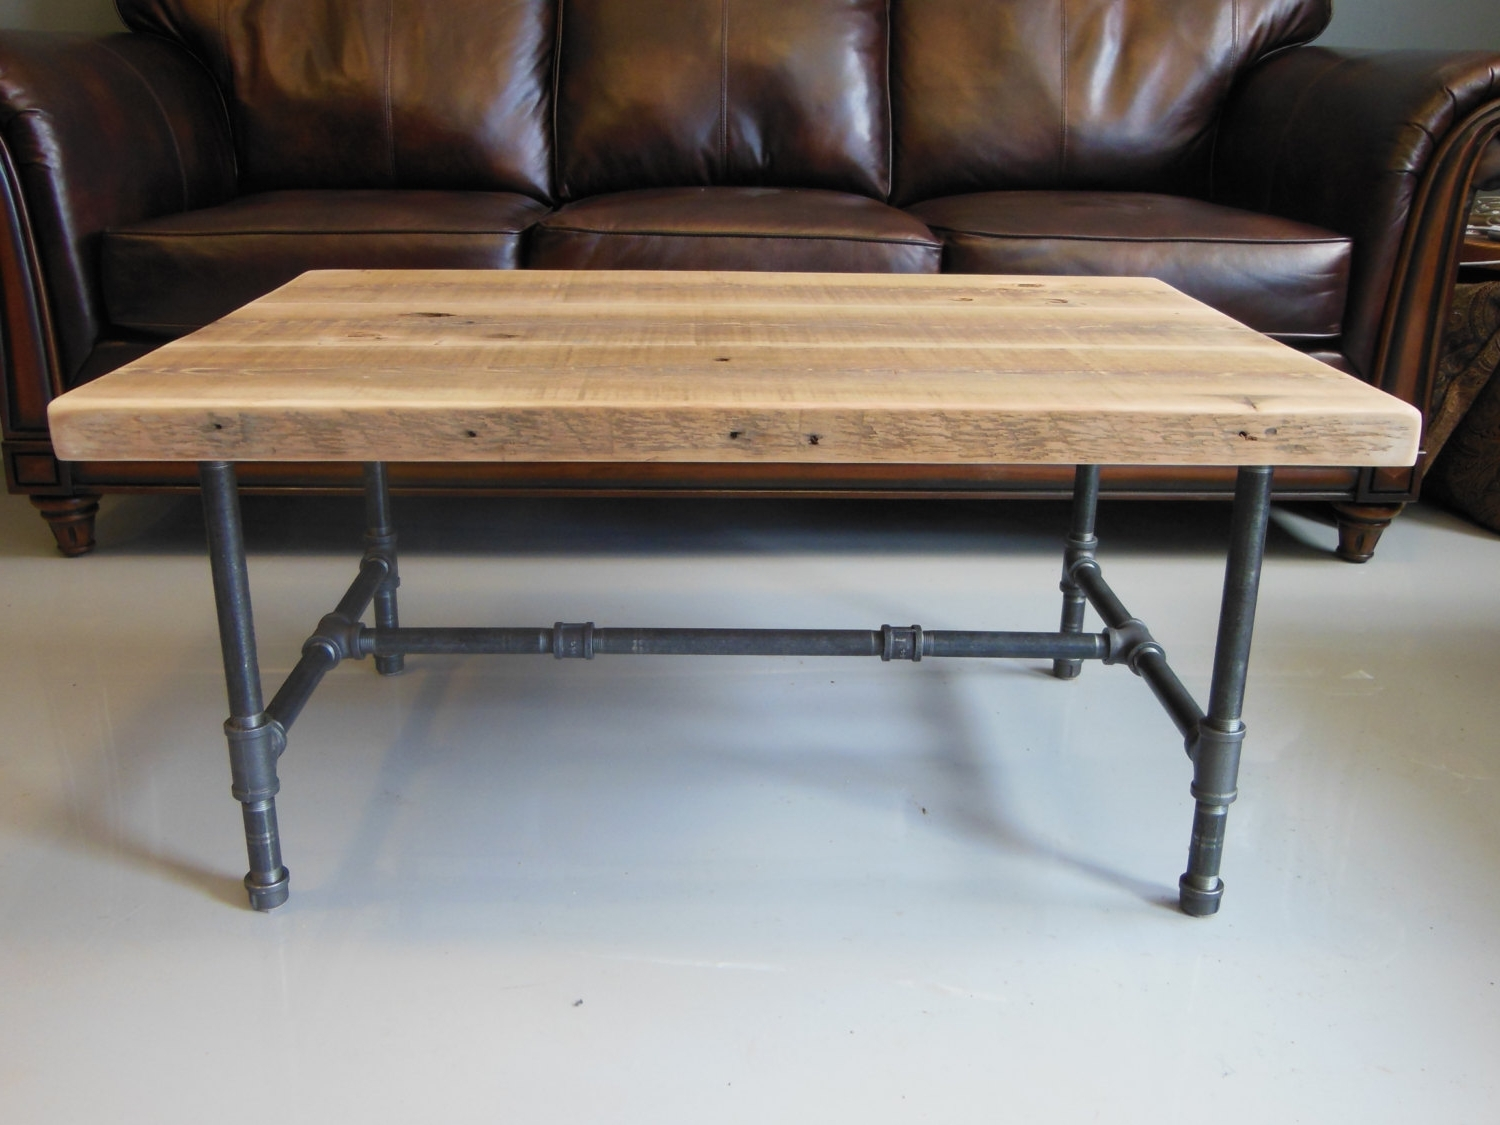 Wood Coffee Table Legs Industrial – Thelightlaughed Within Most Recently Released Iron Wood Coffee Tables With Wheels (View 5 of 20)